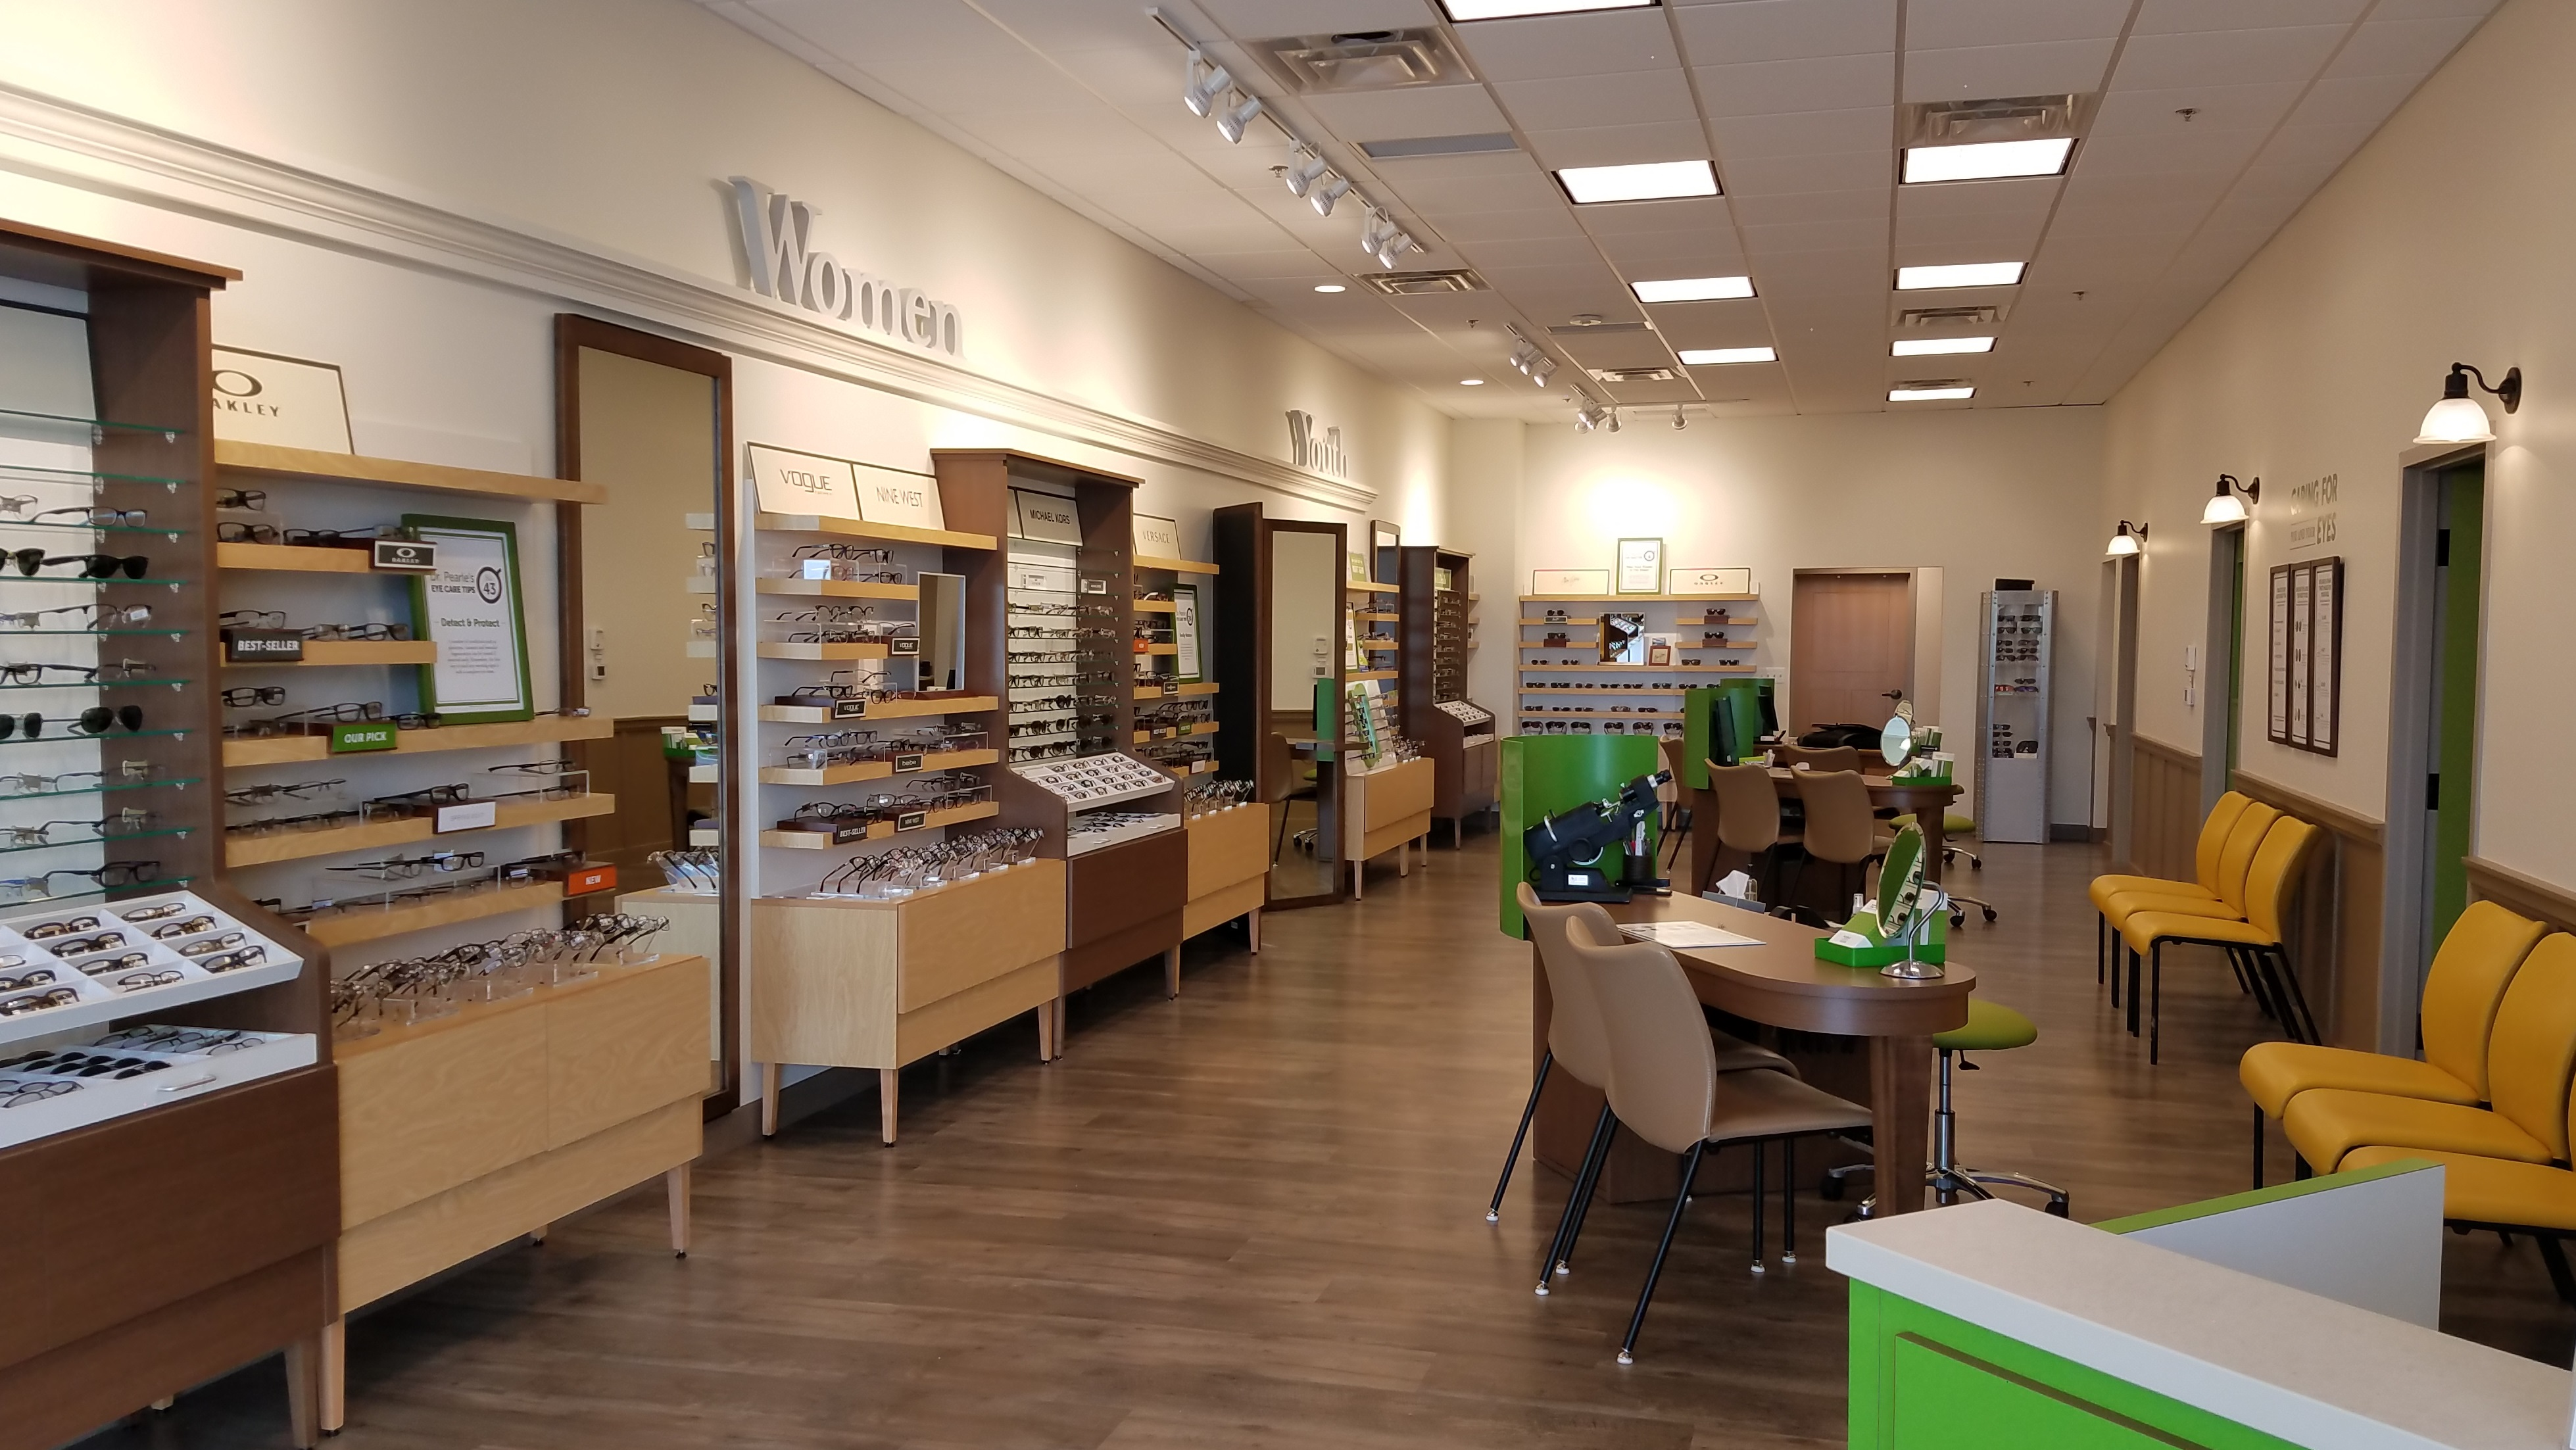 f10a0bce68 Pearle Vision Taylor services Wayne County